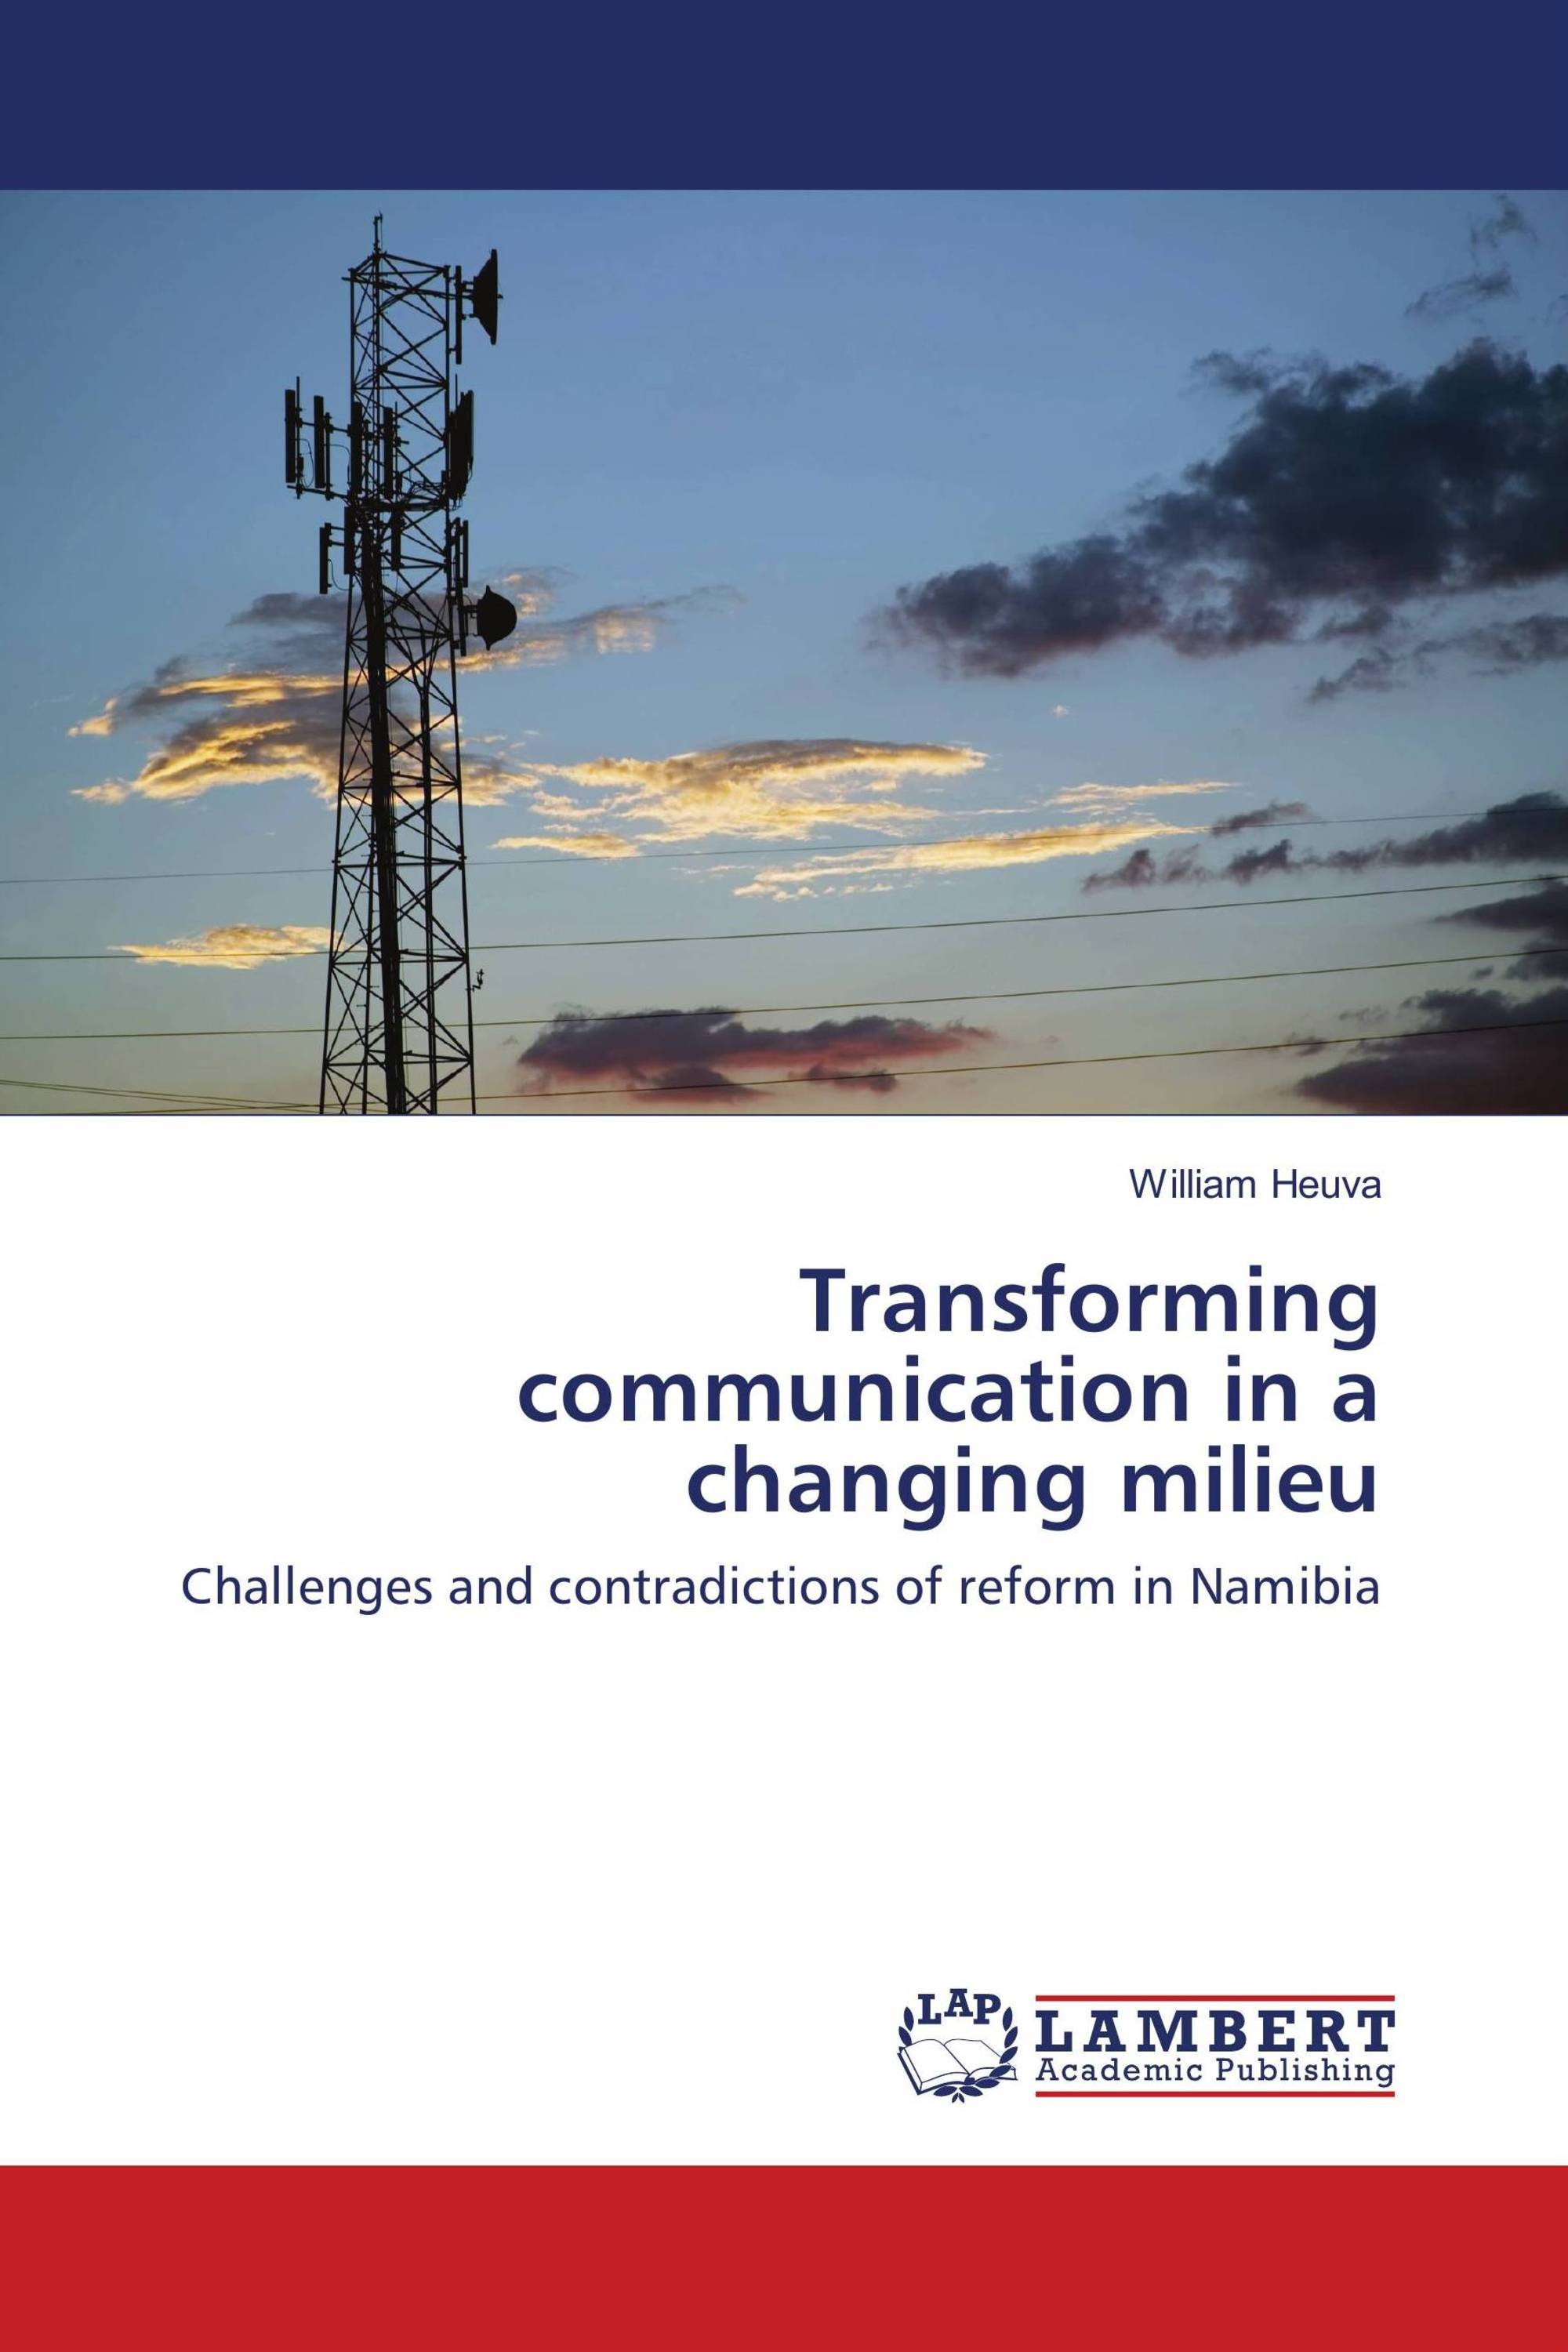 Transforming communication in a changing milieu